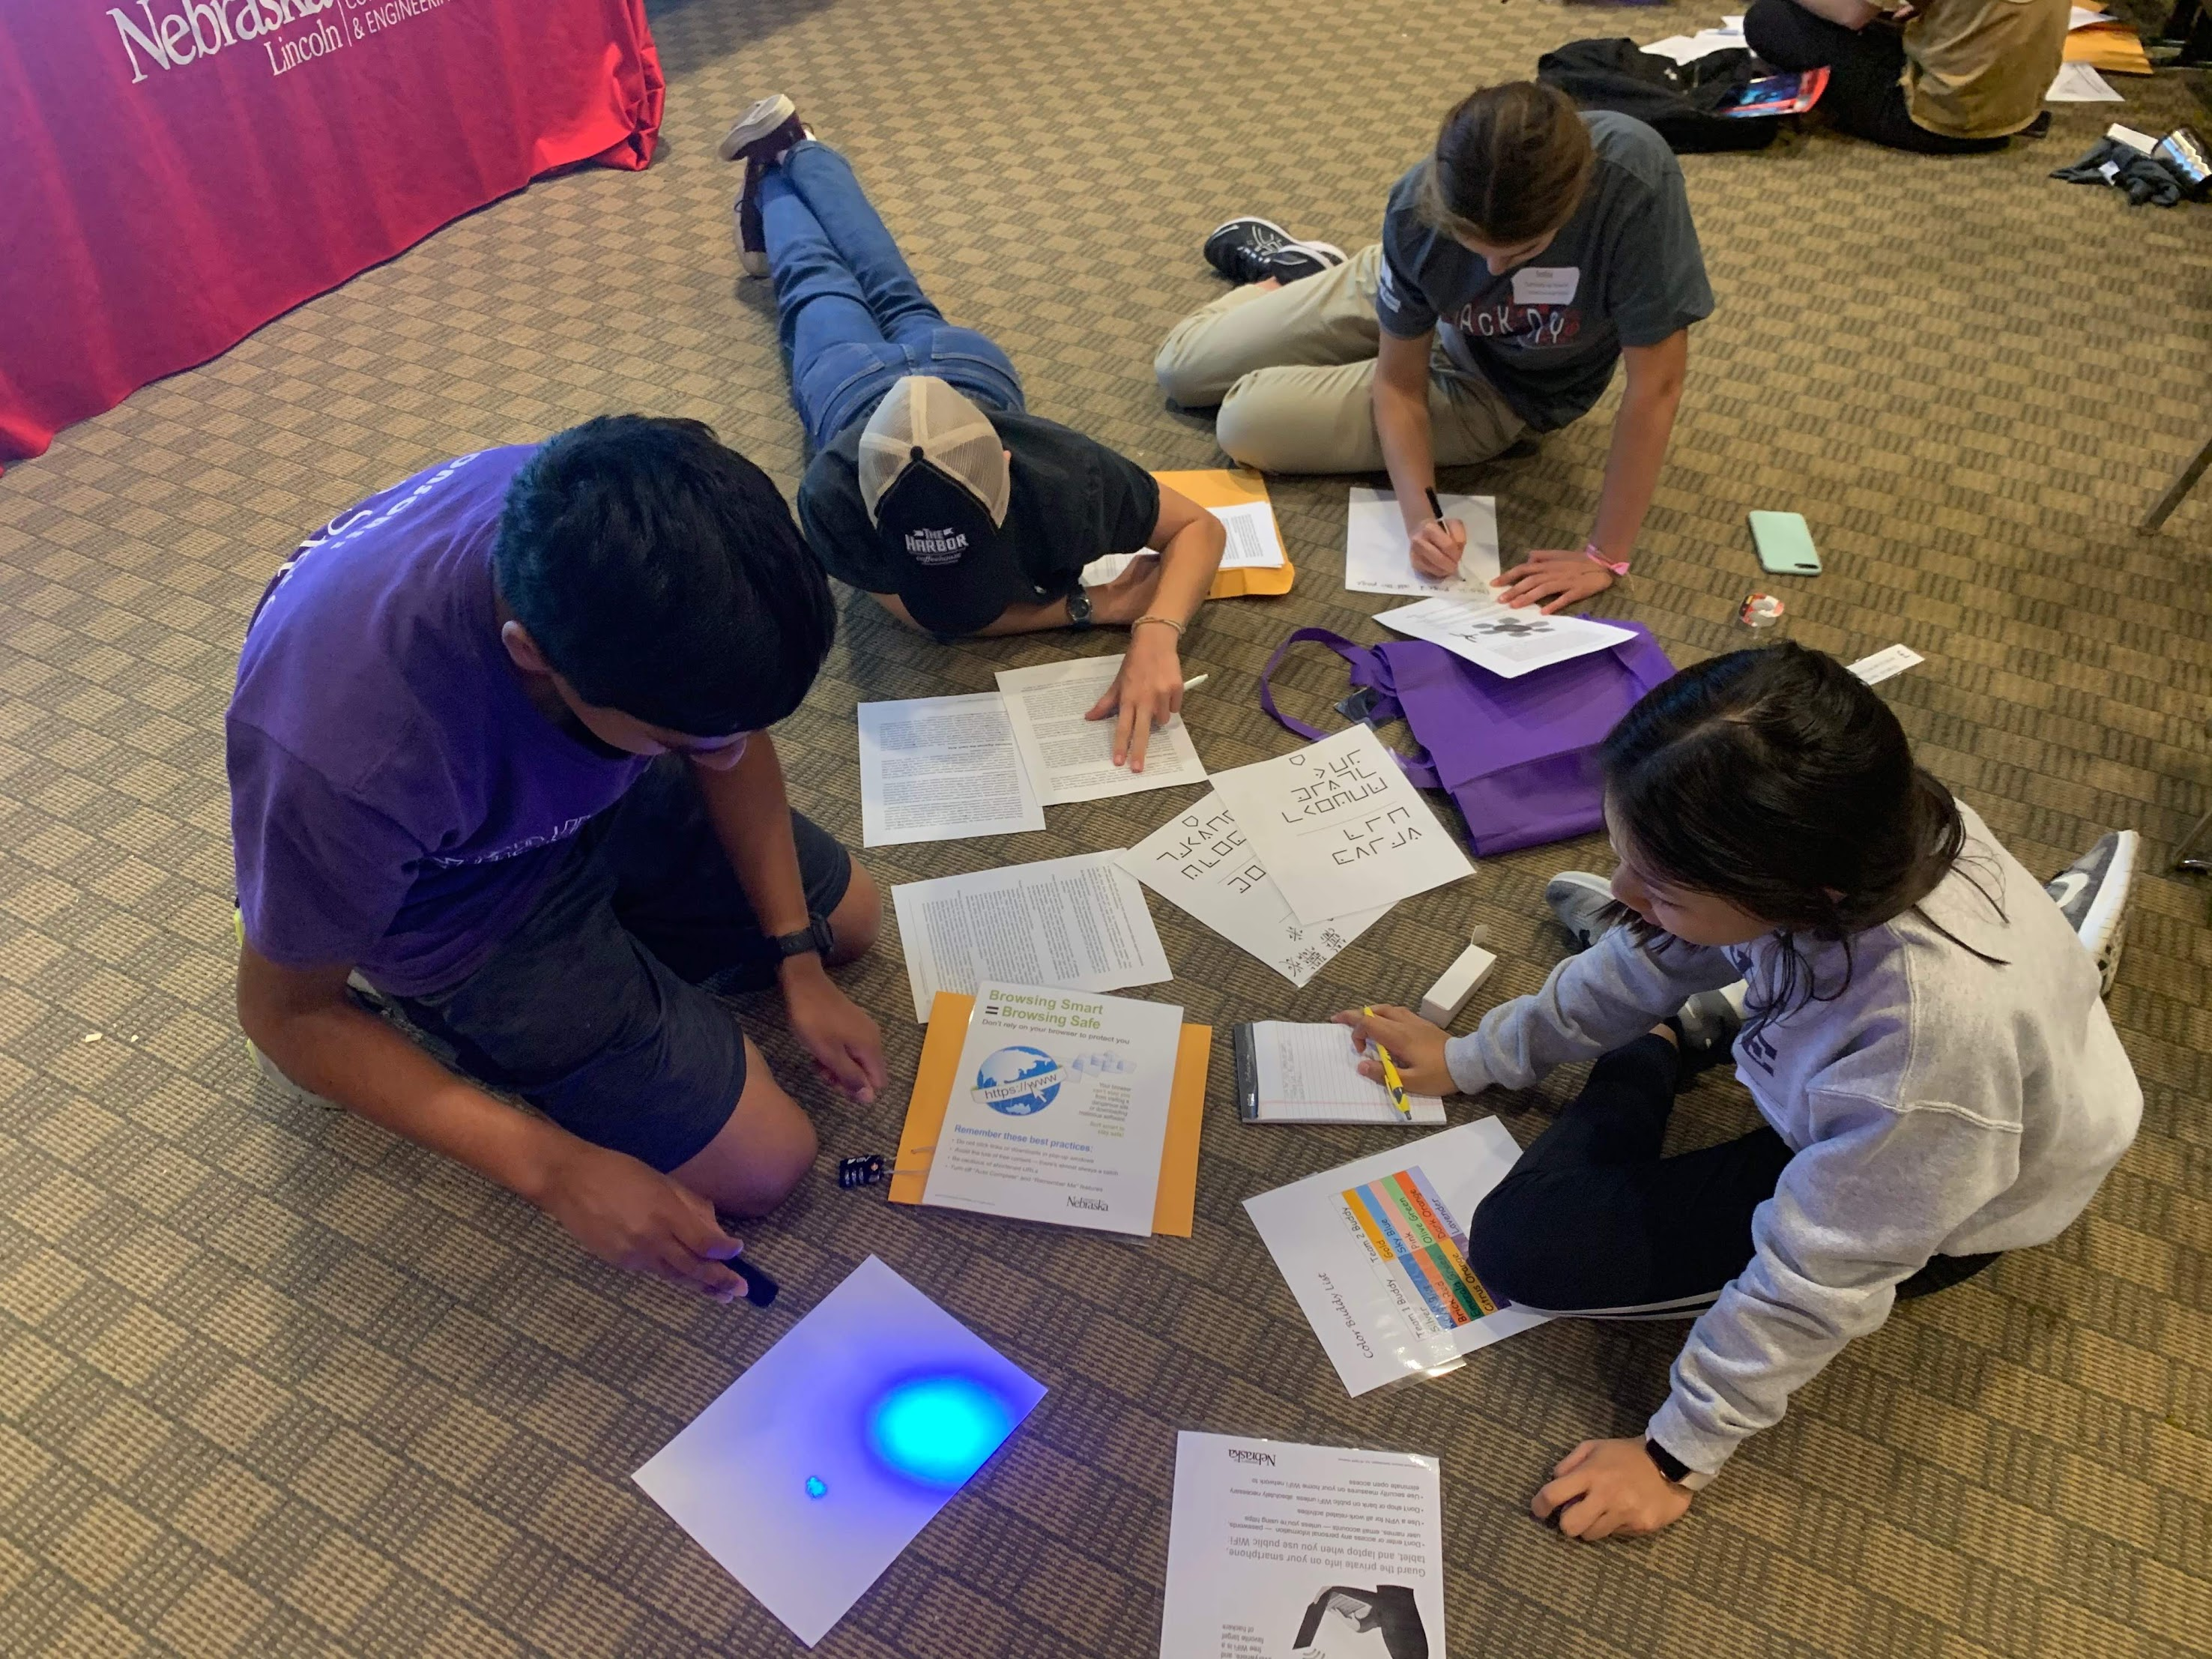 Students at CSE Hack Day in 2019 participating in an Escape Room Challenge activity.